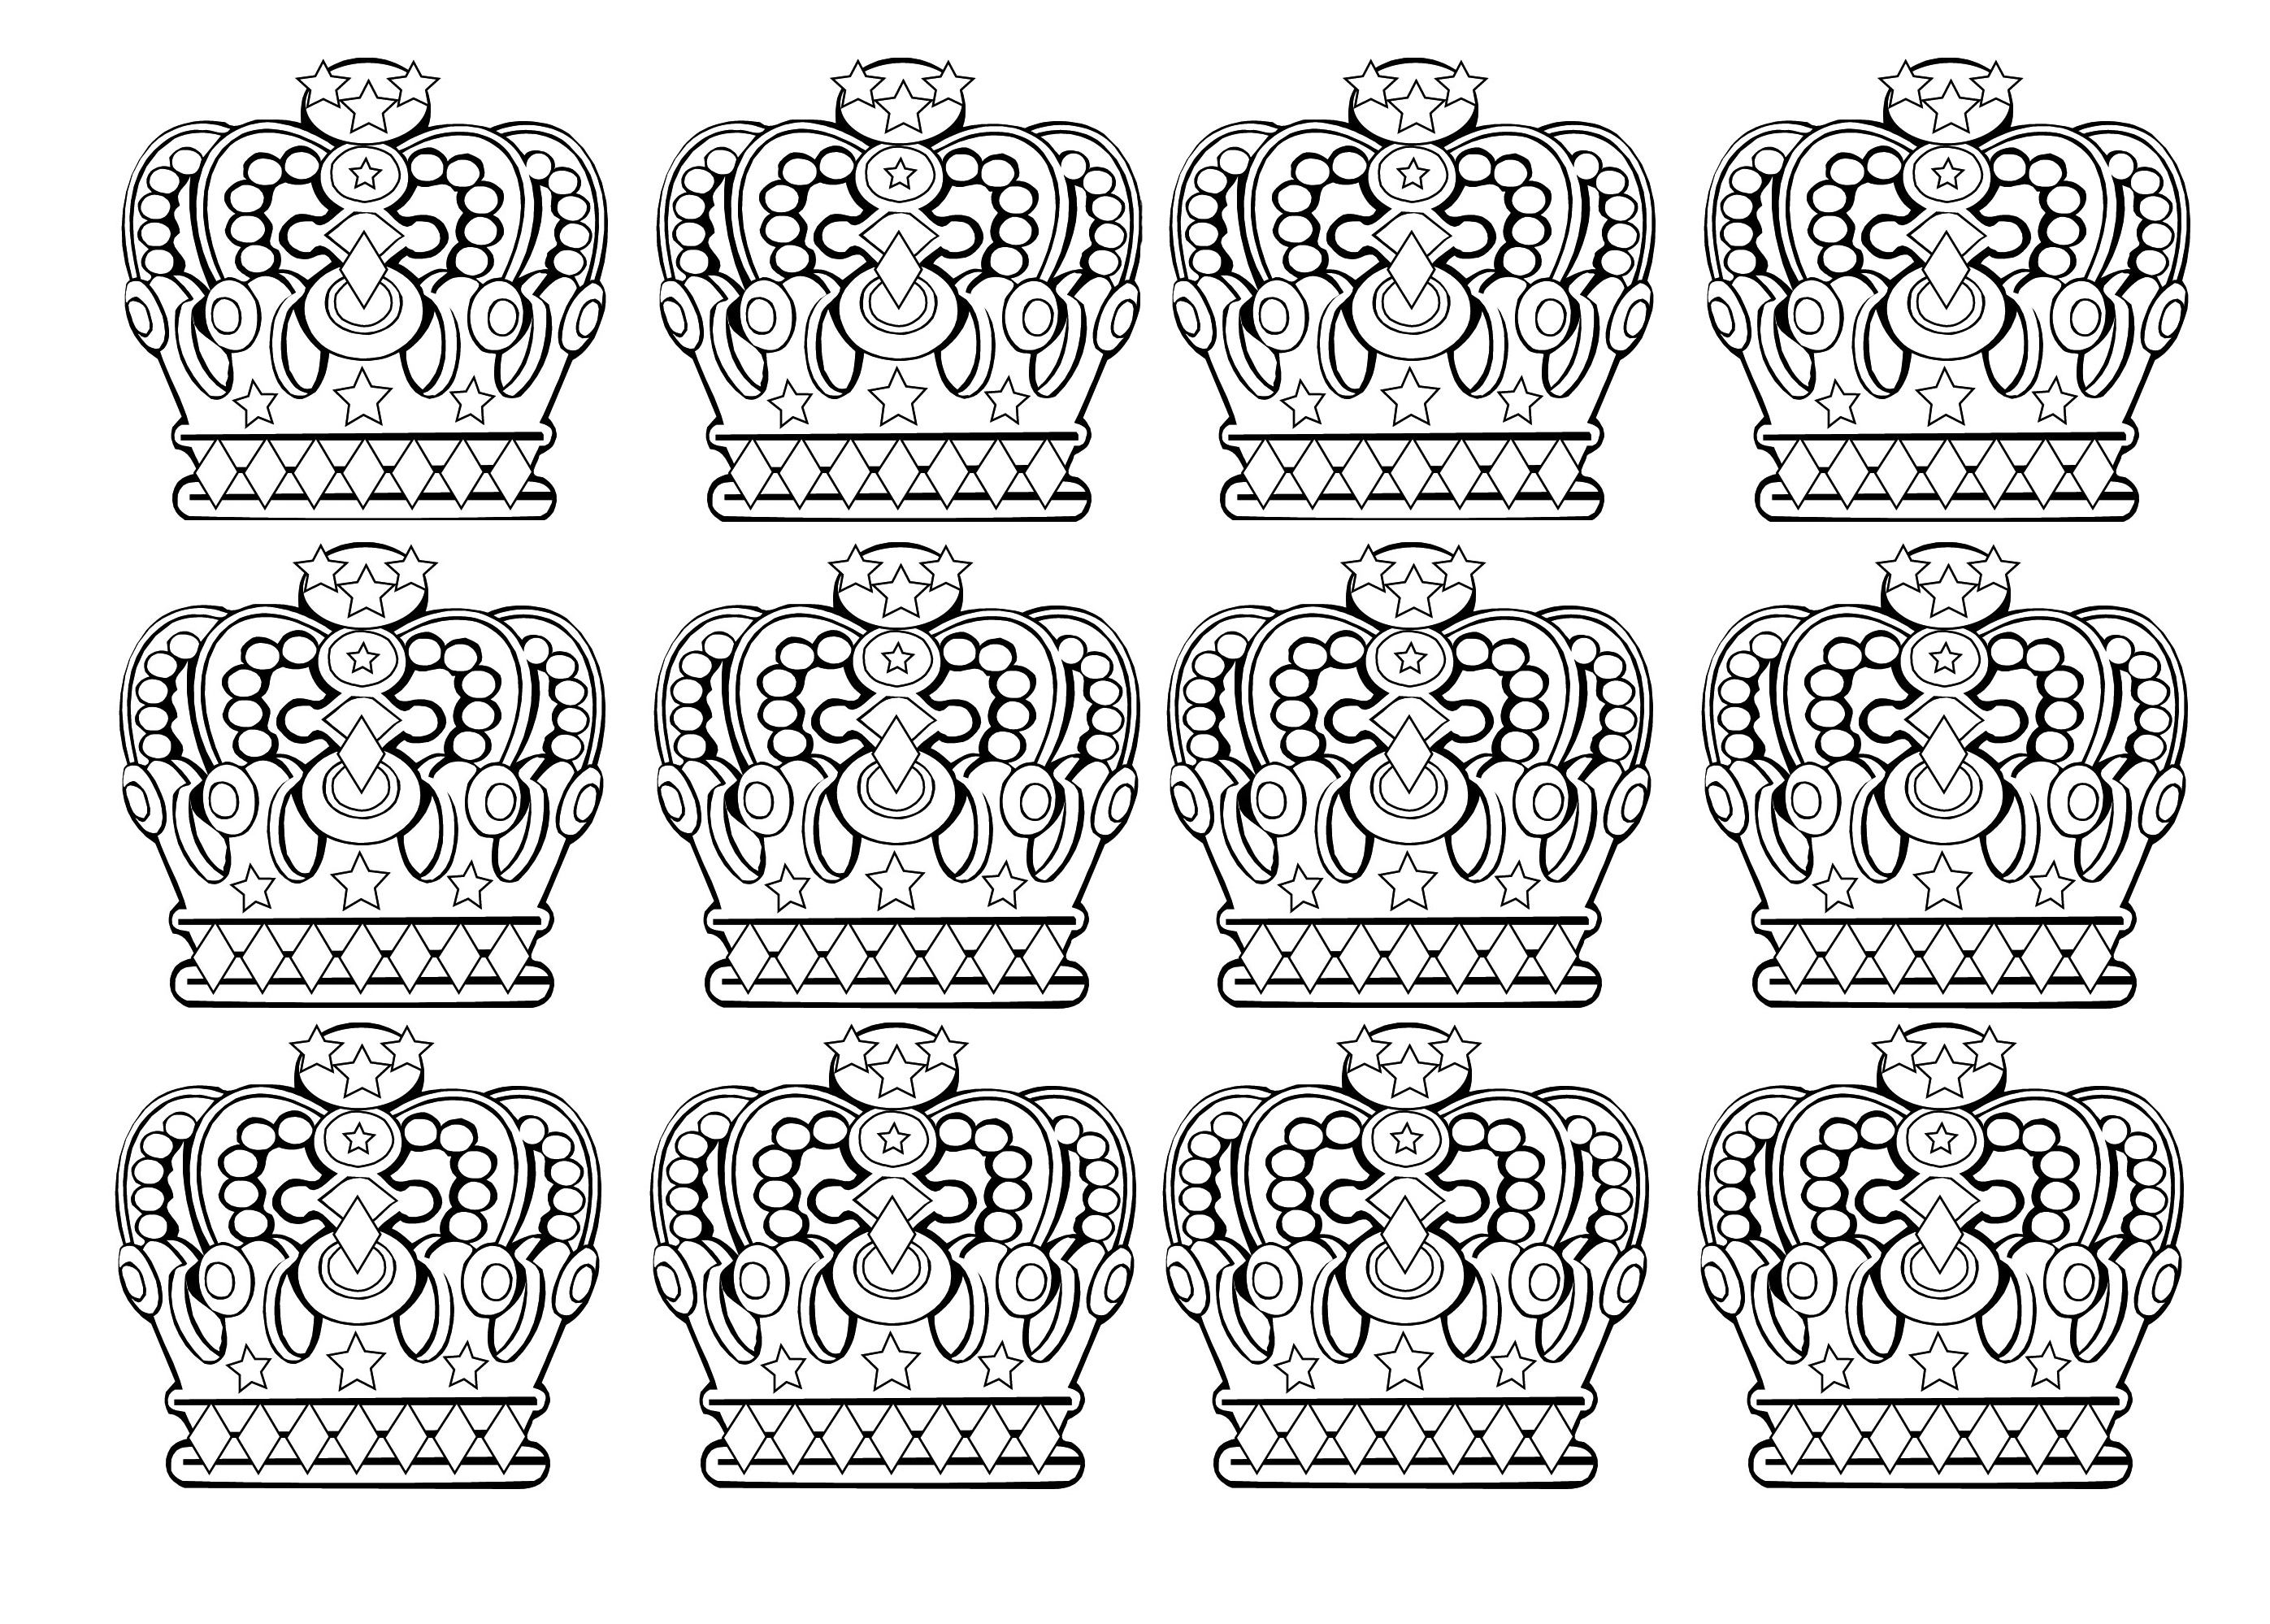 Royal crowns (12 patterns)